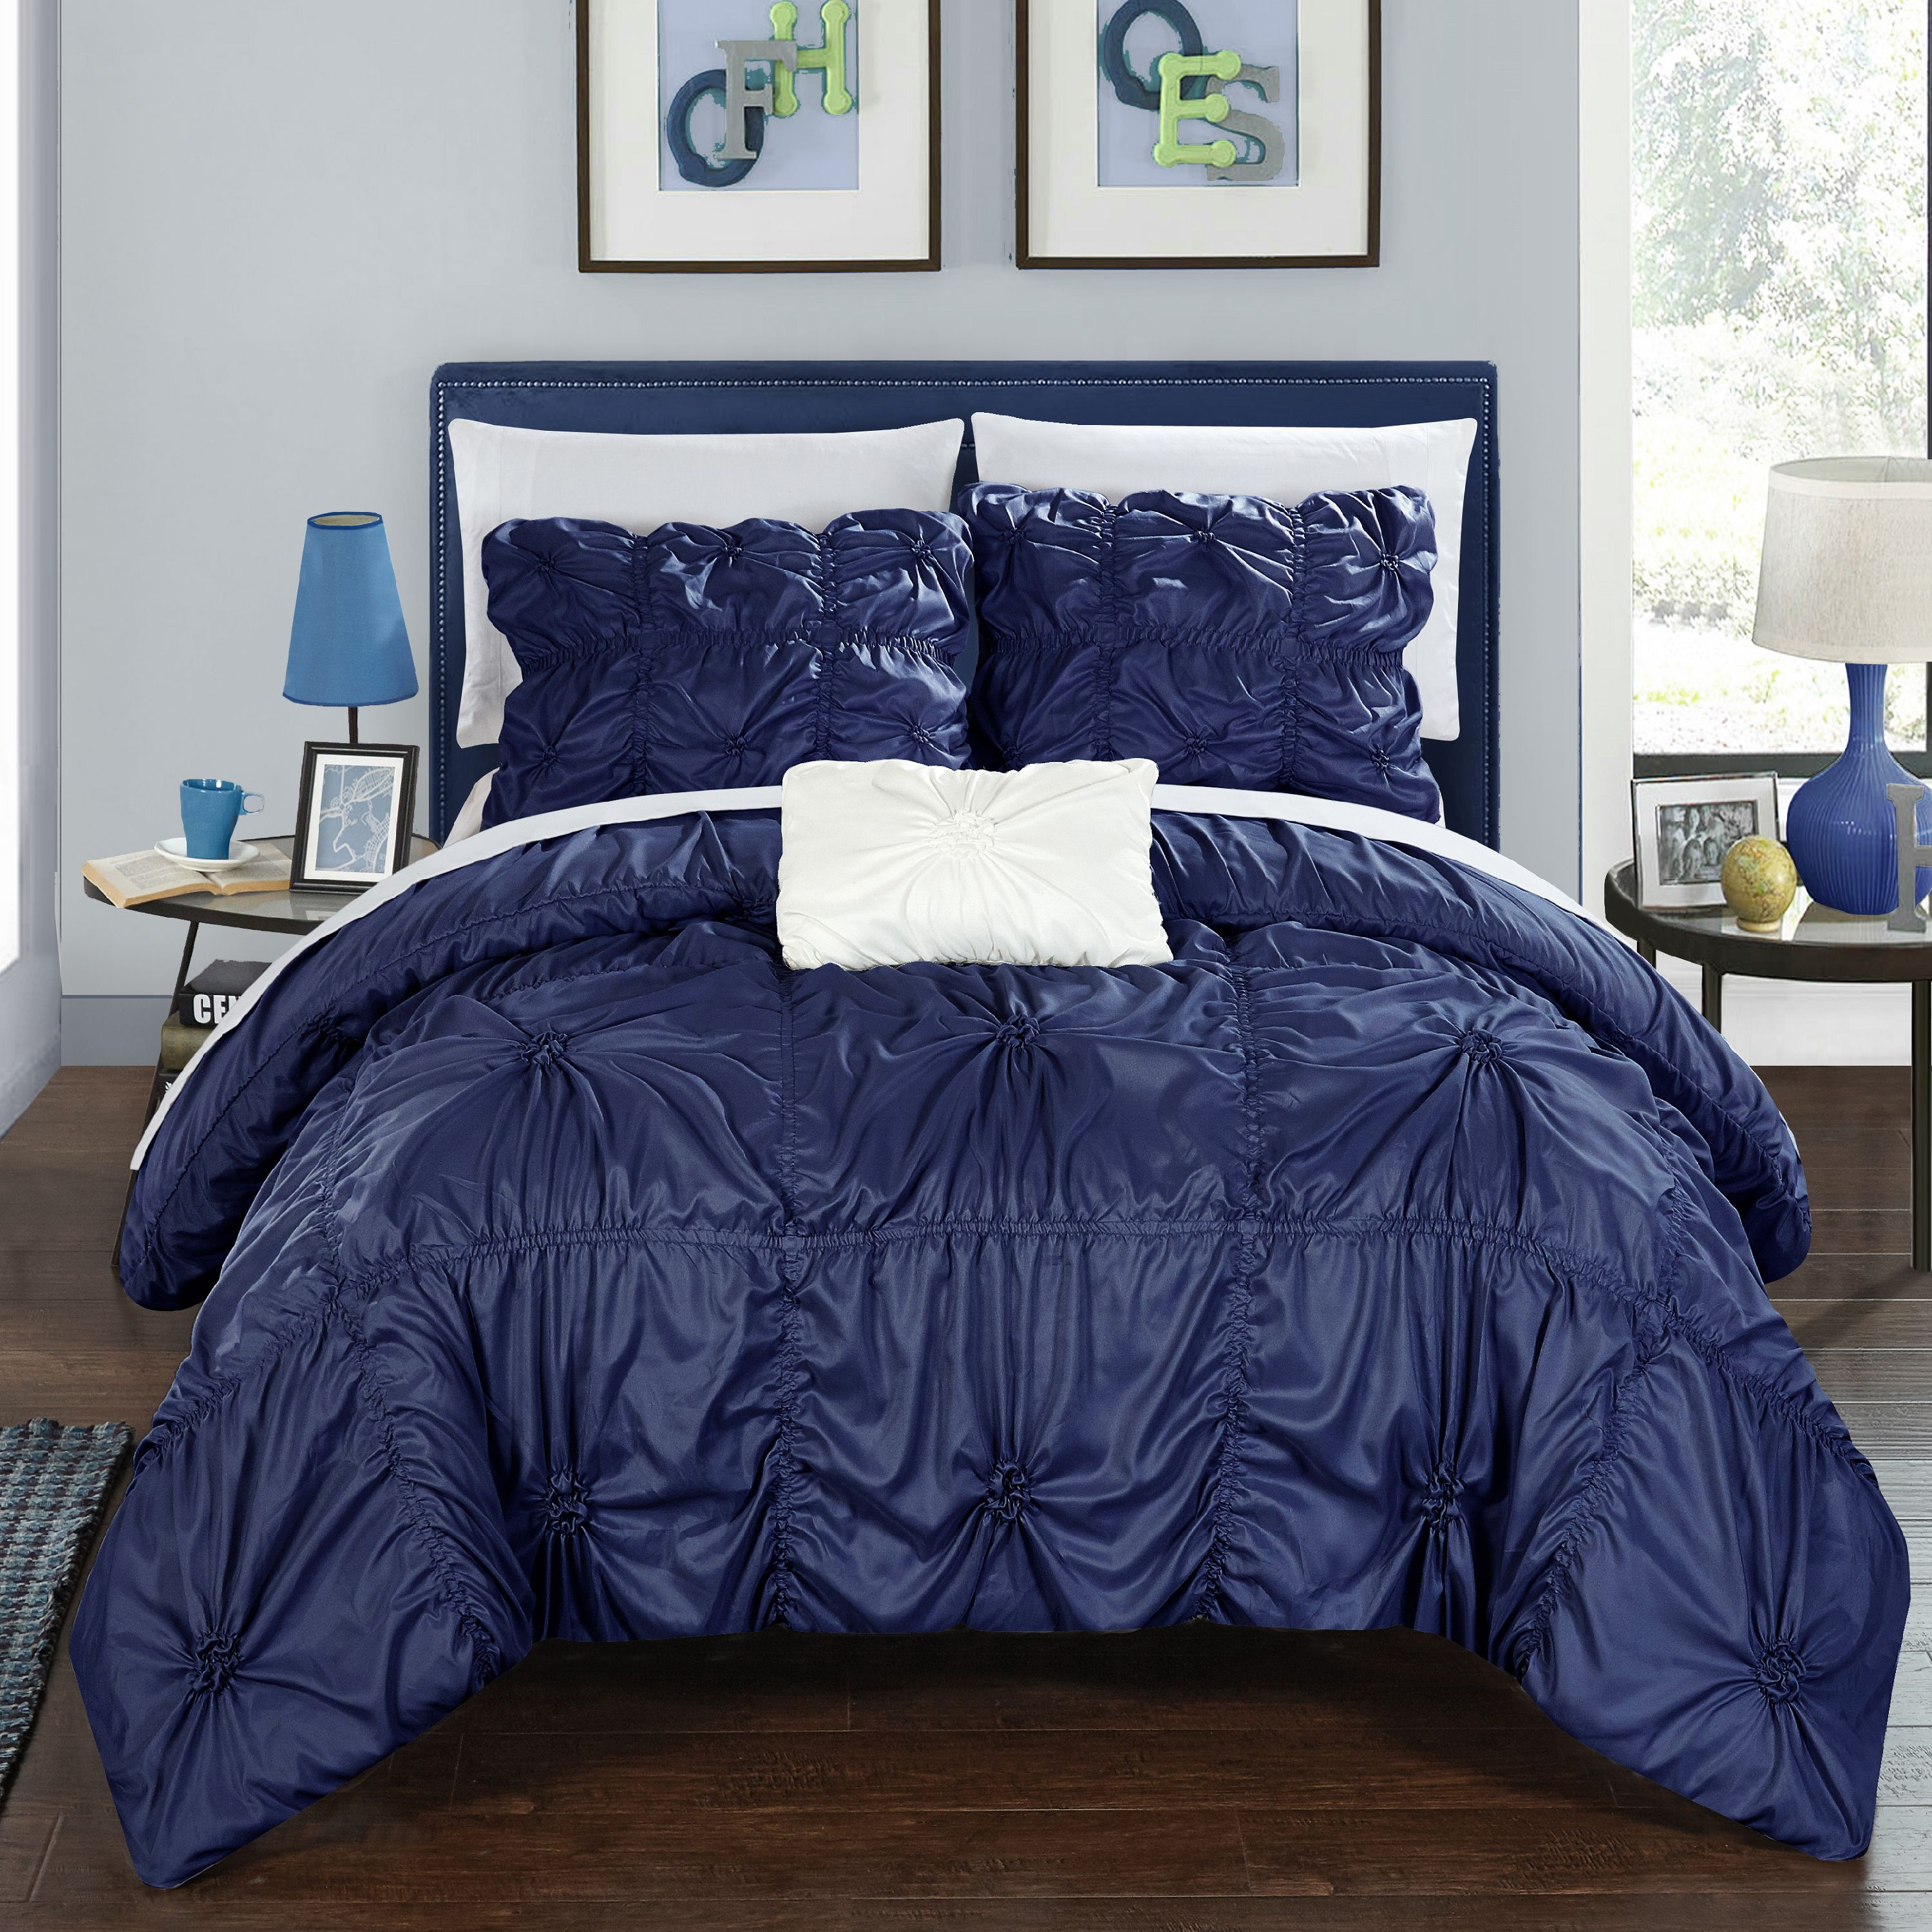 Chic Home 8-Piece Benedict Bed In a Bag Duvet Set